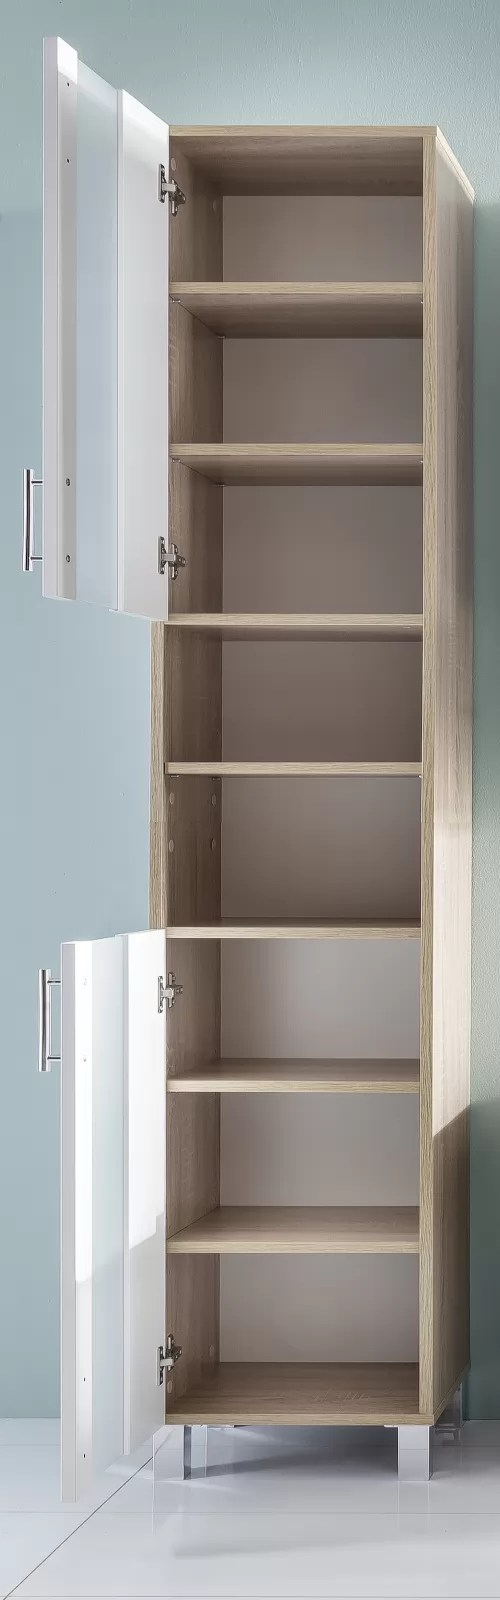 Badezimmer Hochschrank Willhaben Kommode Bad Wei Good Affordable Kommode Cm Breit Wei Elegant